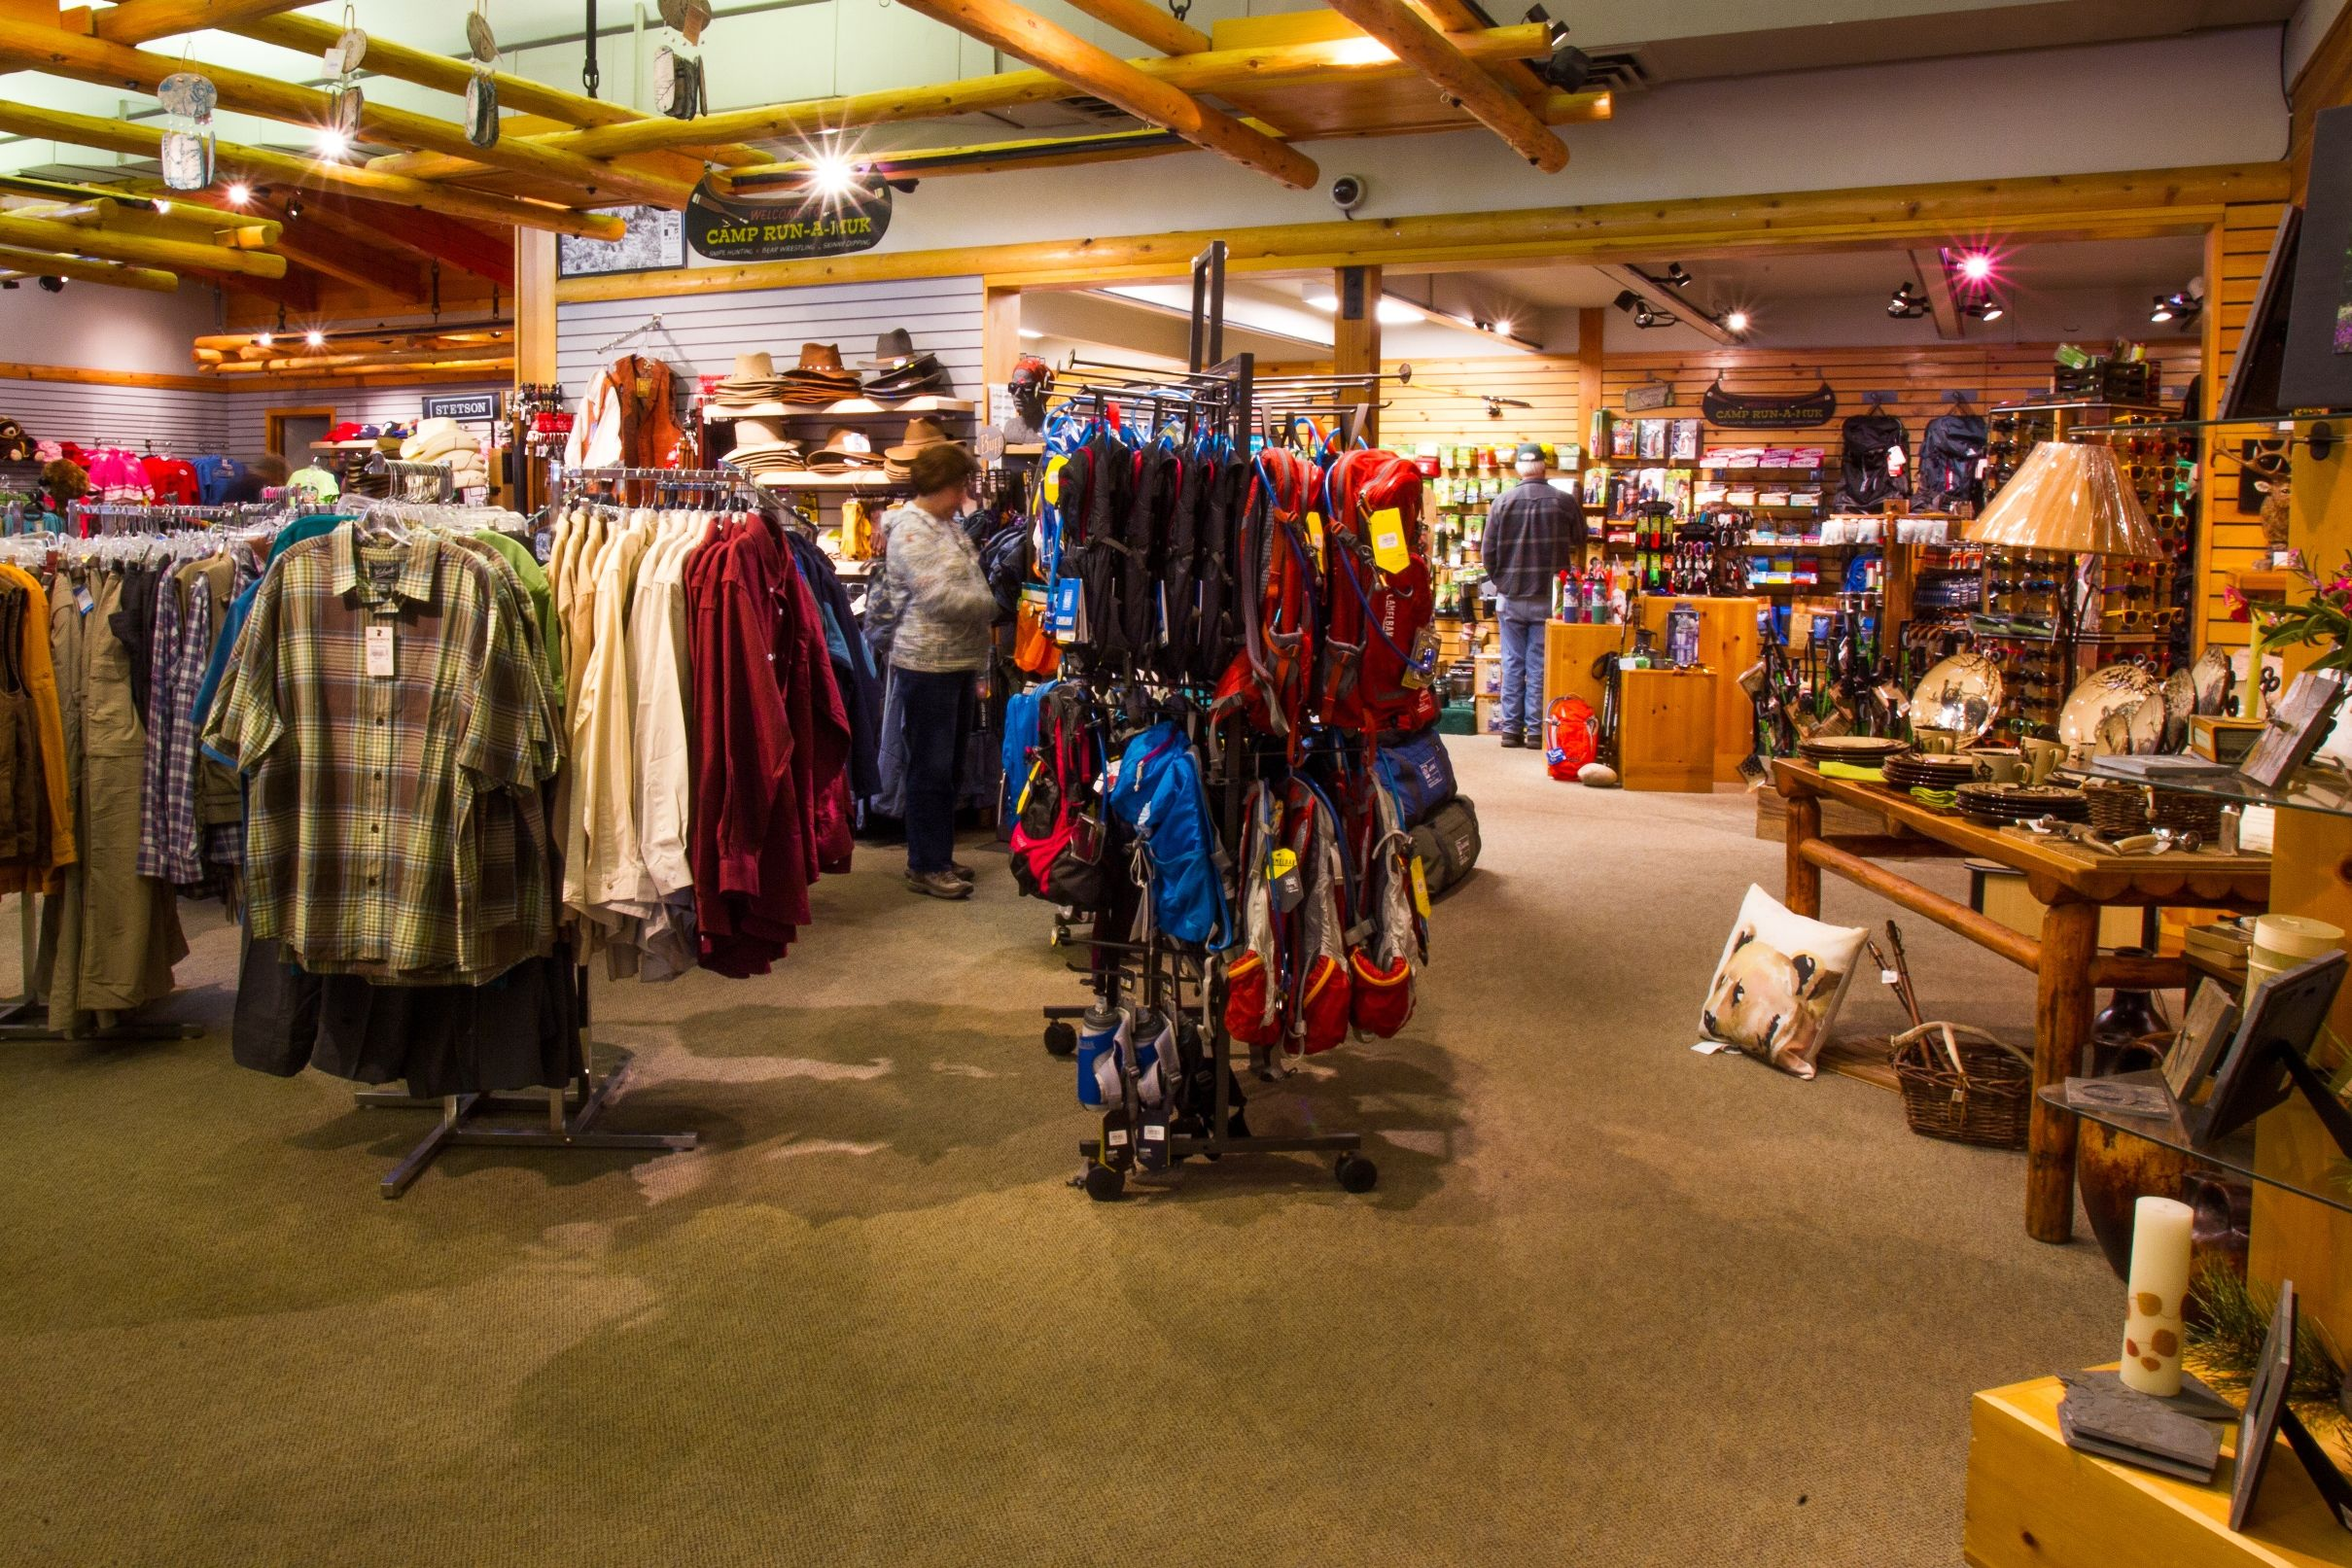 Colter Bay Village Gift Shop - General Store - Camping Supplies, Gifts,  Clothing - Grand Teton National Park - Sh… | Bay village, National park  gifts, Teton village